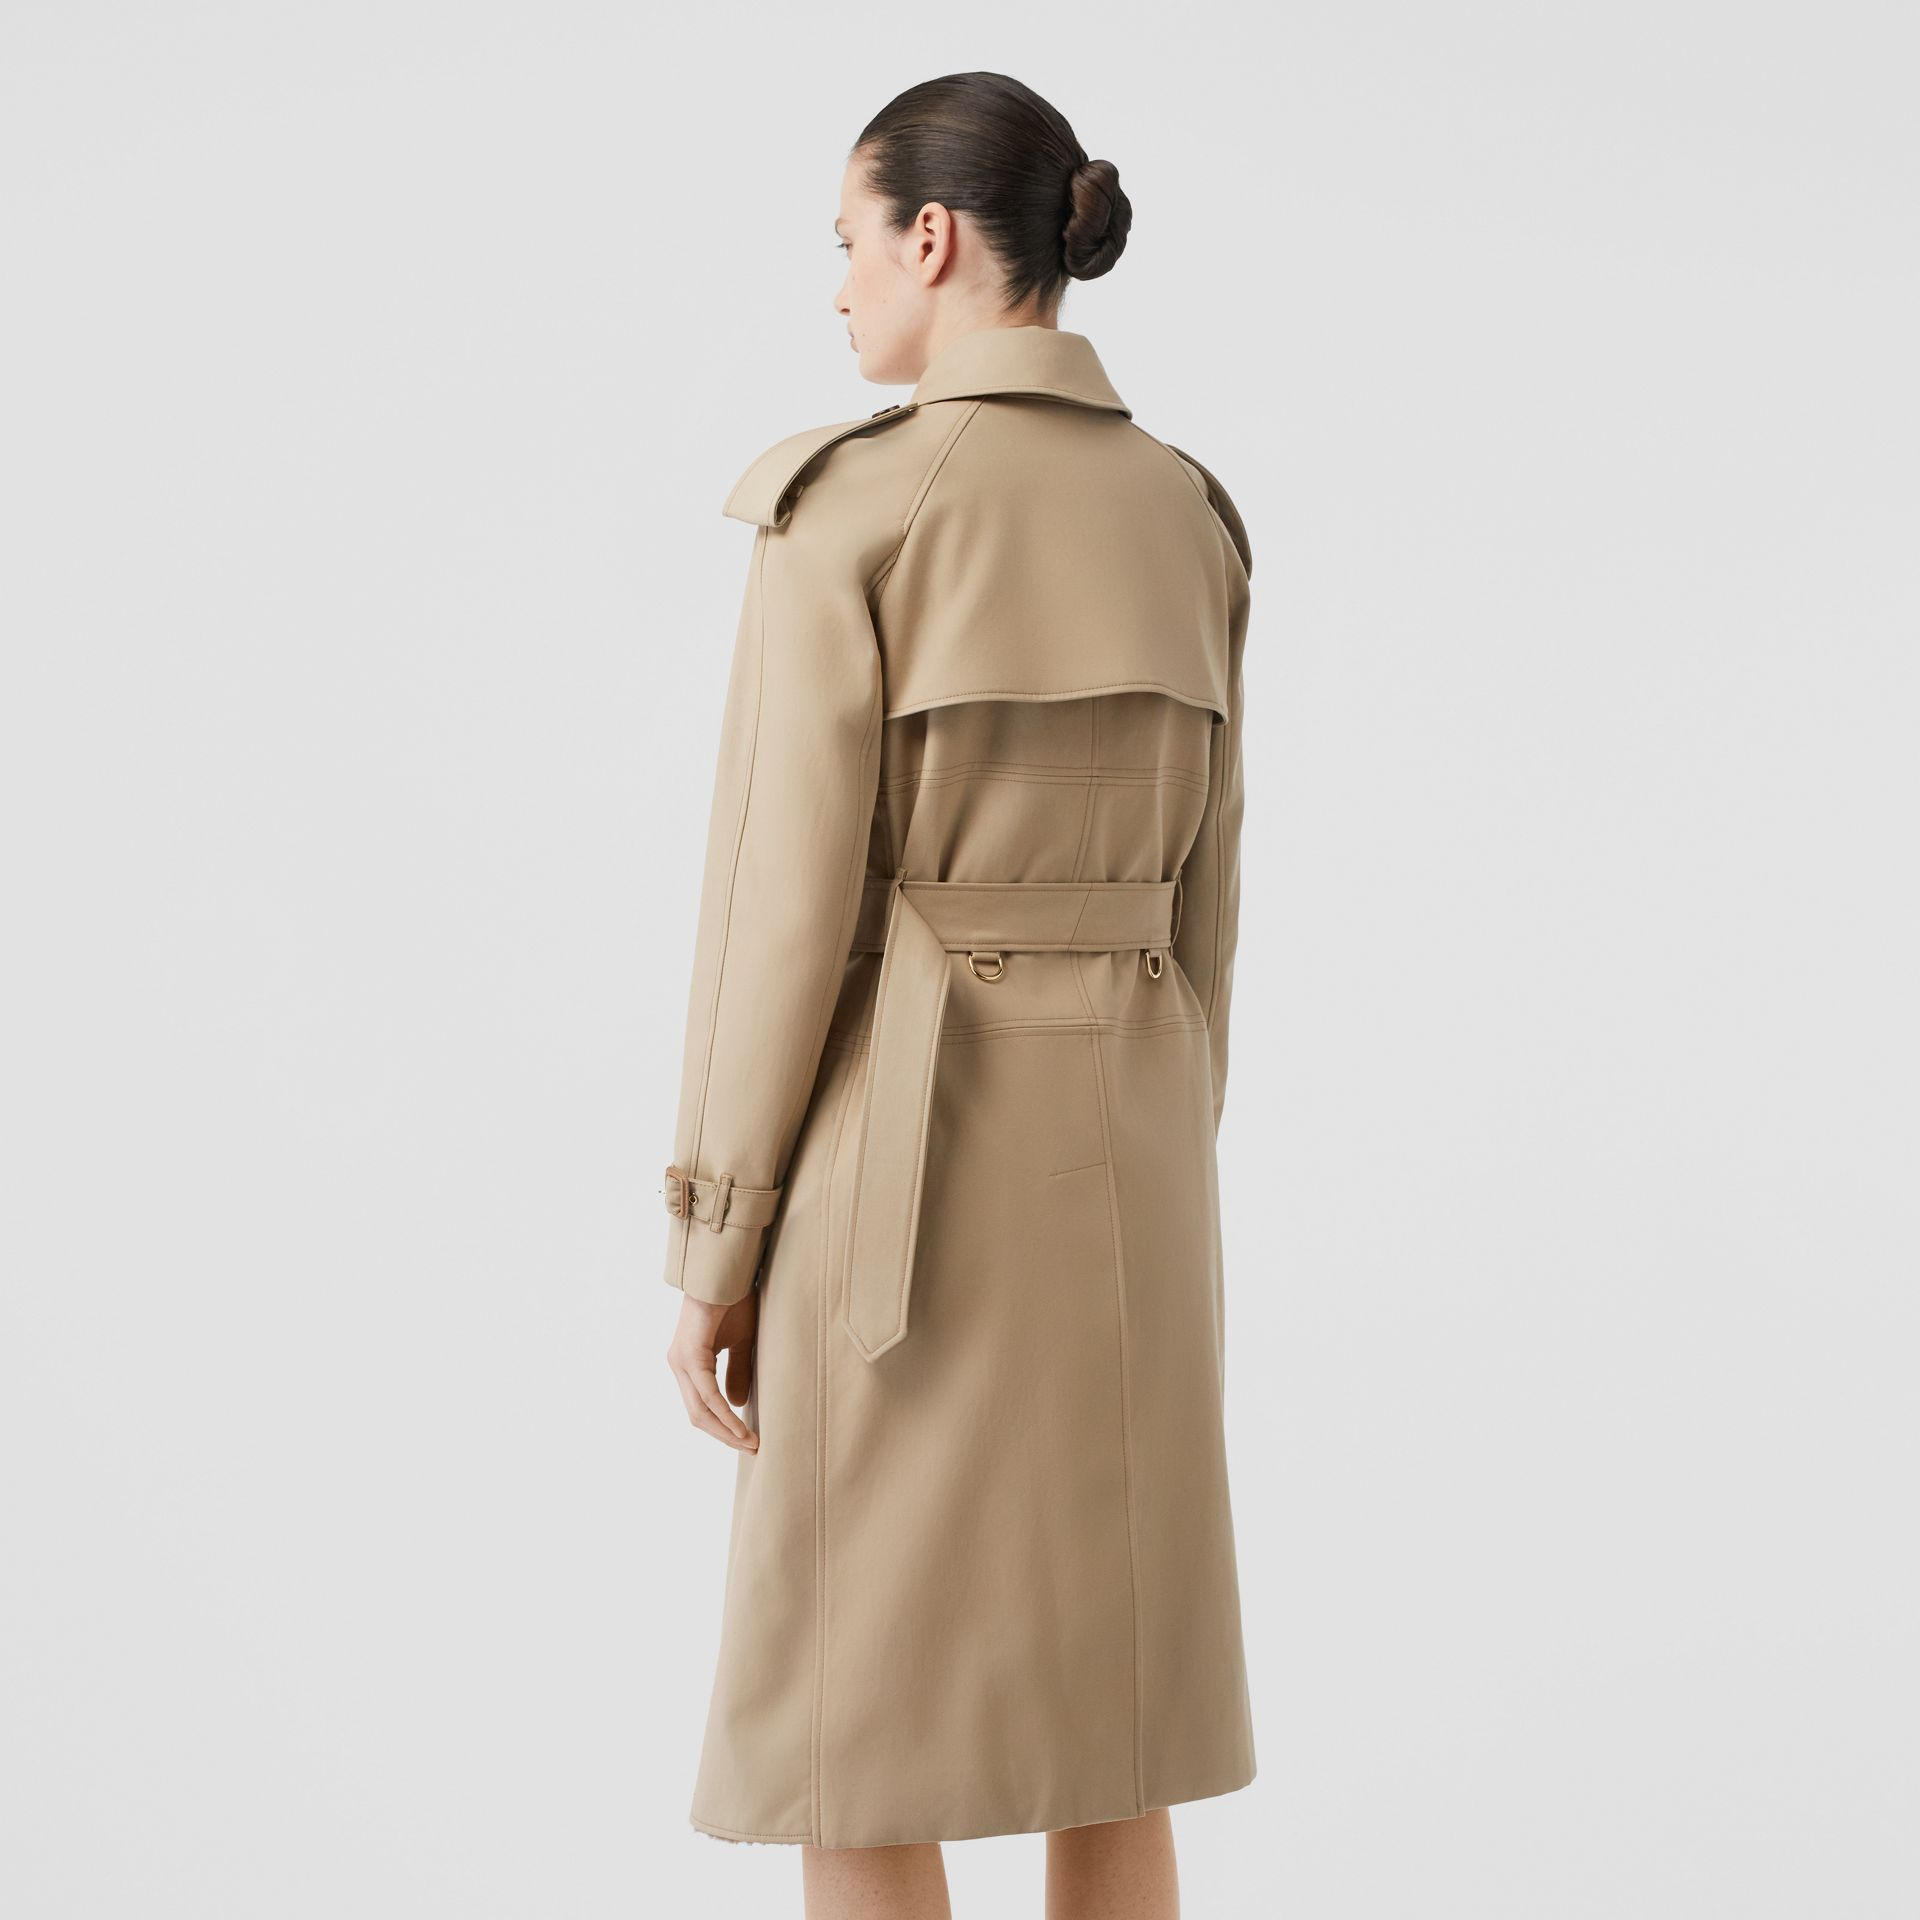 Deconstructed Cotton and Shearling Trench Coat in Honey - Women | Burberry Singapore - gallery image 1